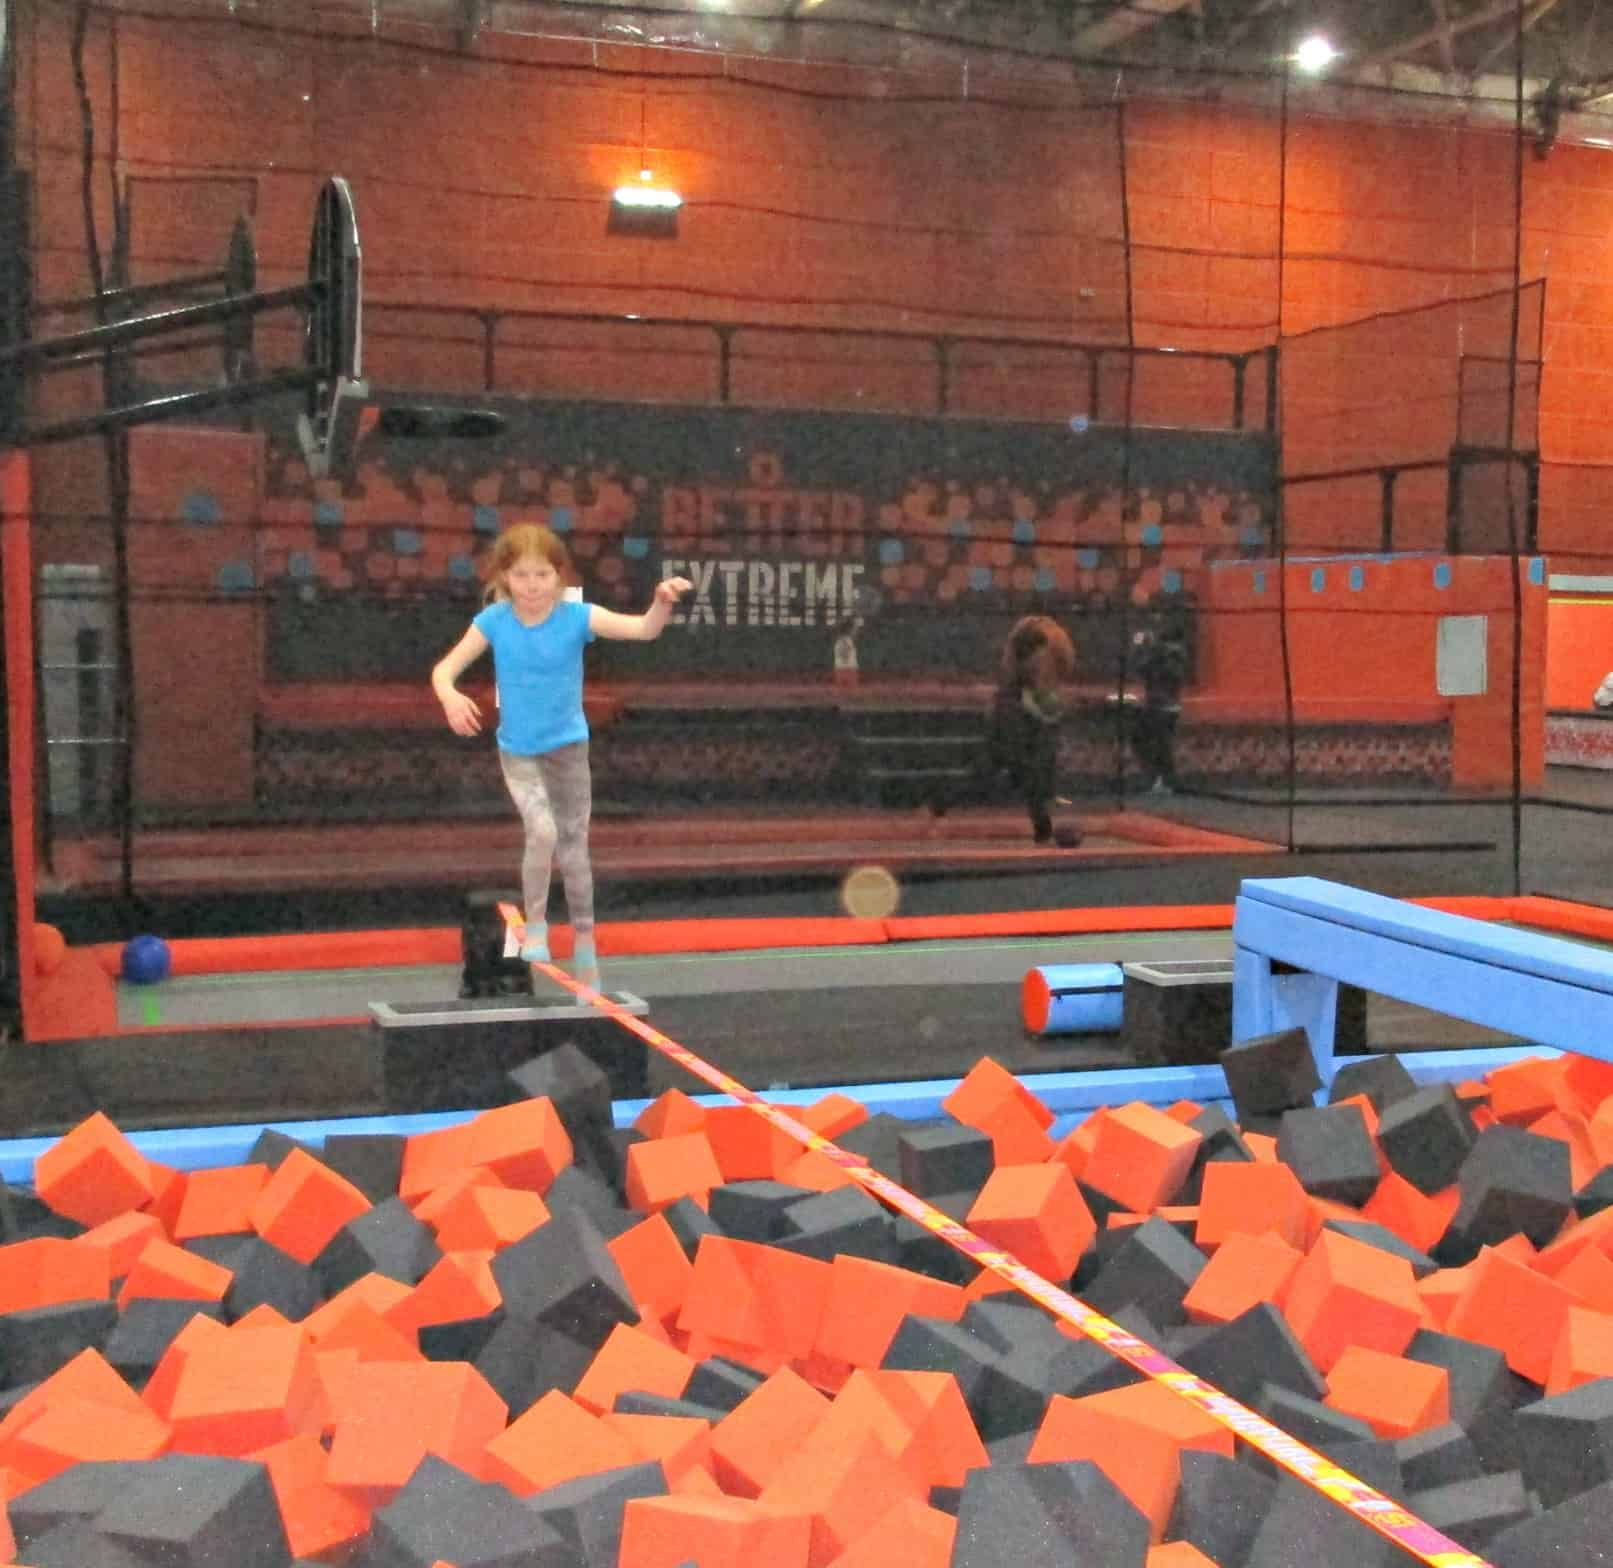 Better Extreme is a fabulous 1300 square foot trampoline park in Swindon with over 100 individual trampolines, and nine fun areas to choose from including dunk hoops and extreme dodge-ball.